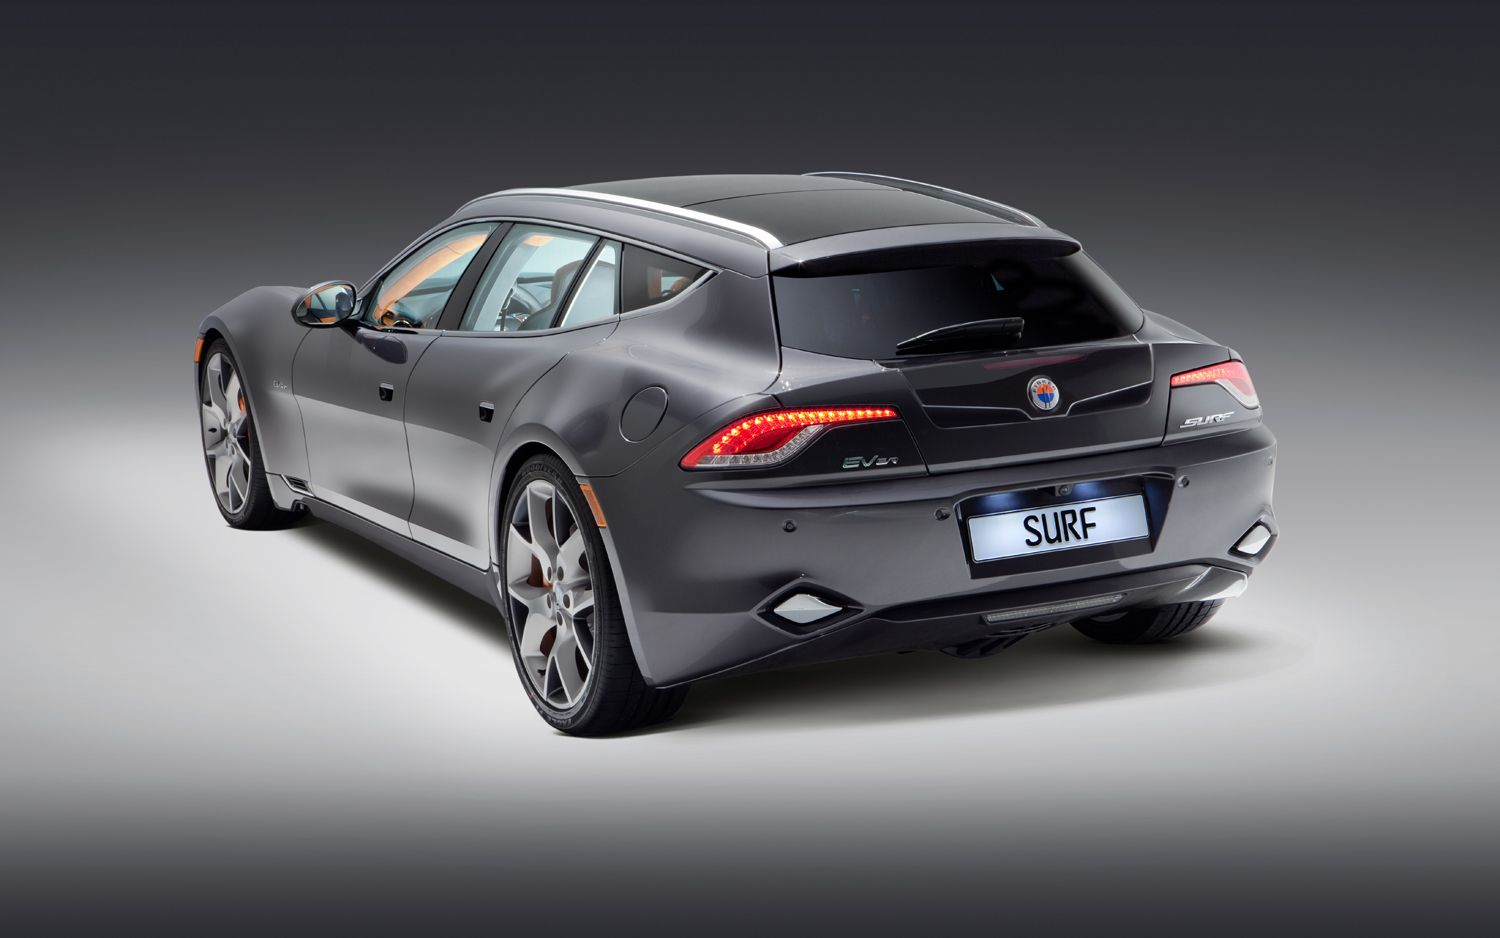 Stylin' and Silent Off Roading: Fisker SUV by 2015 - Motor Trend